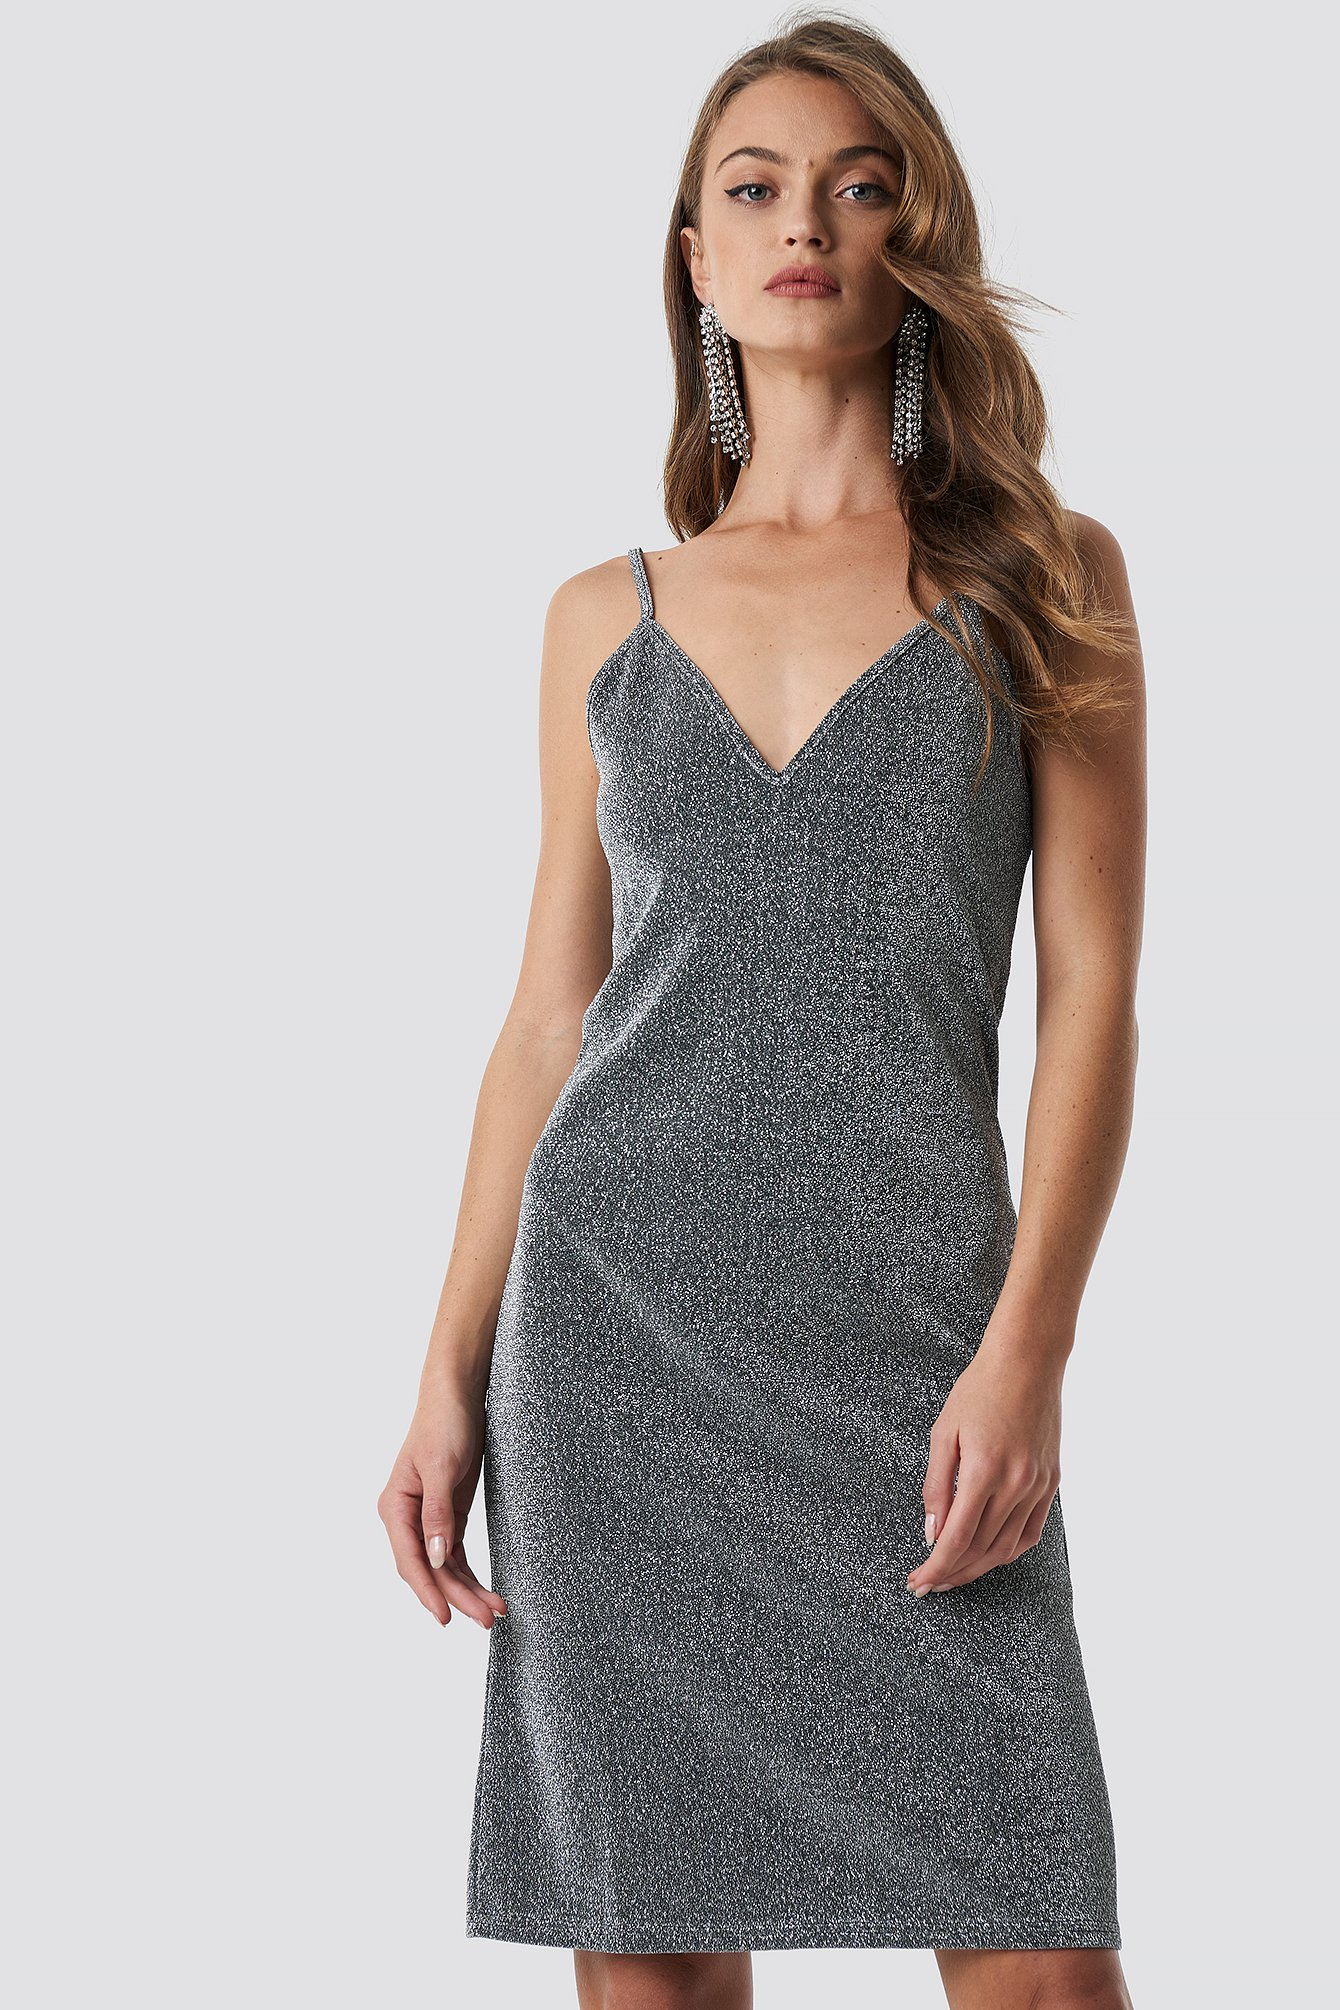 Glittery Slip Dress Silver NA-KD Party